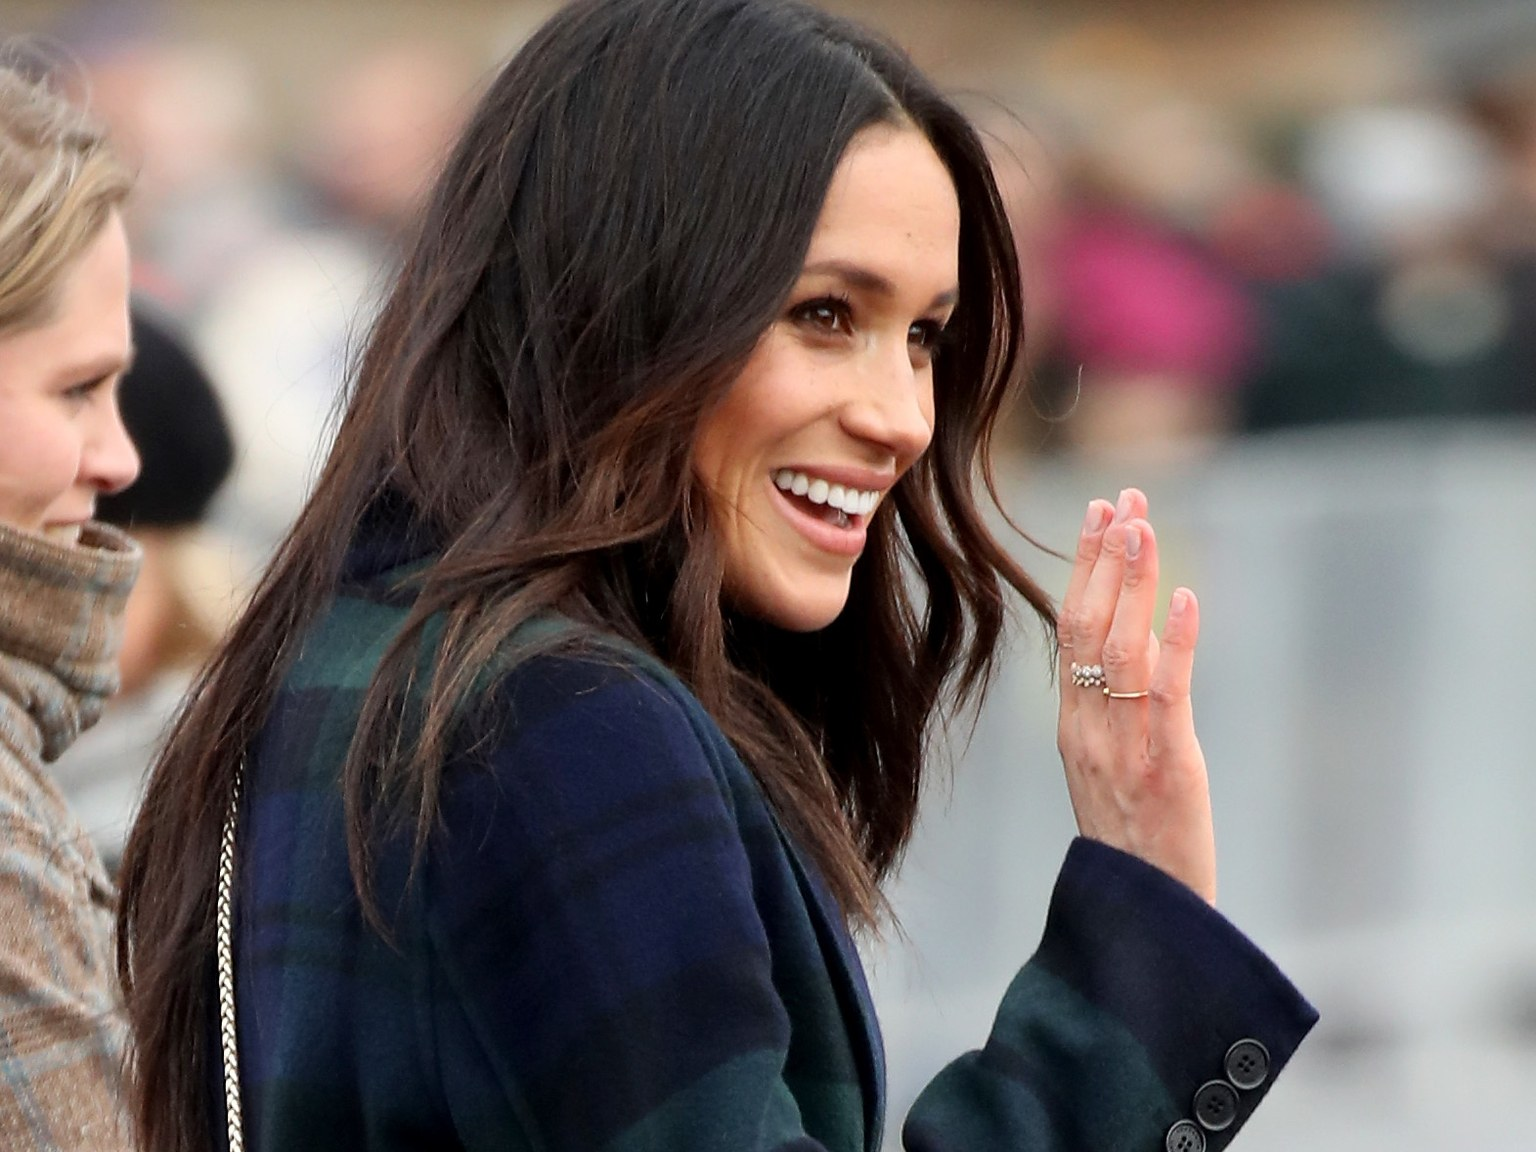 Did Meghan Markle Have A Secret Instagram Account?